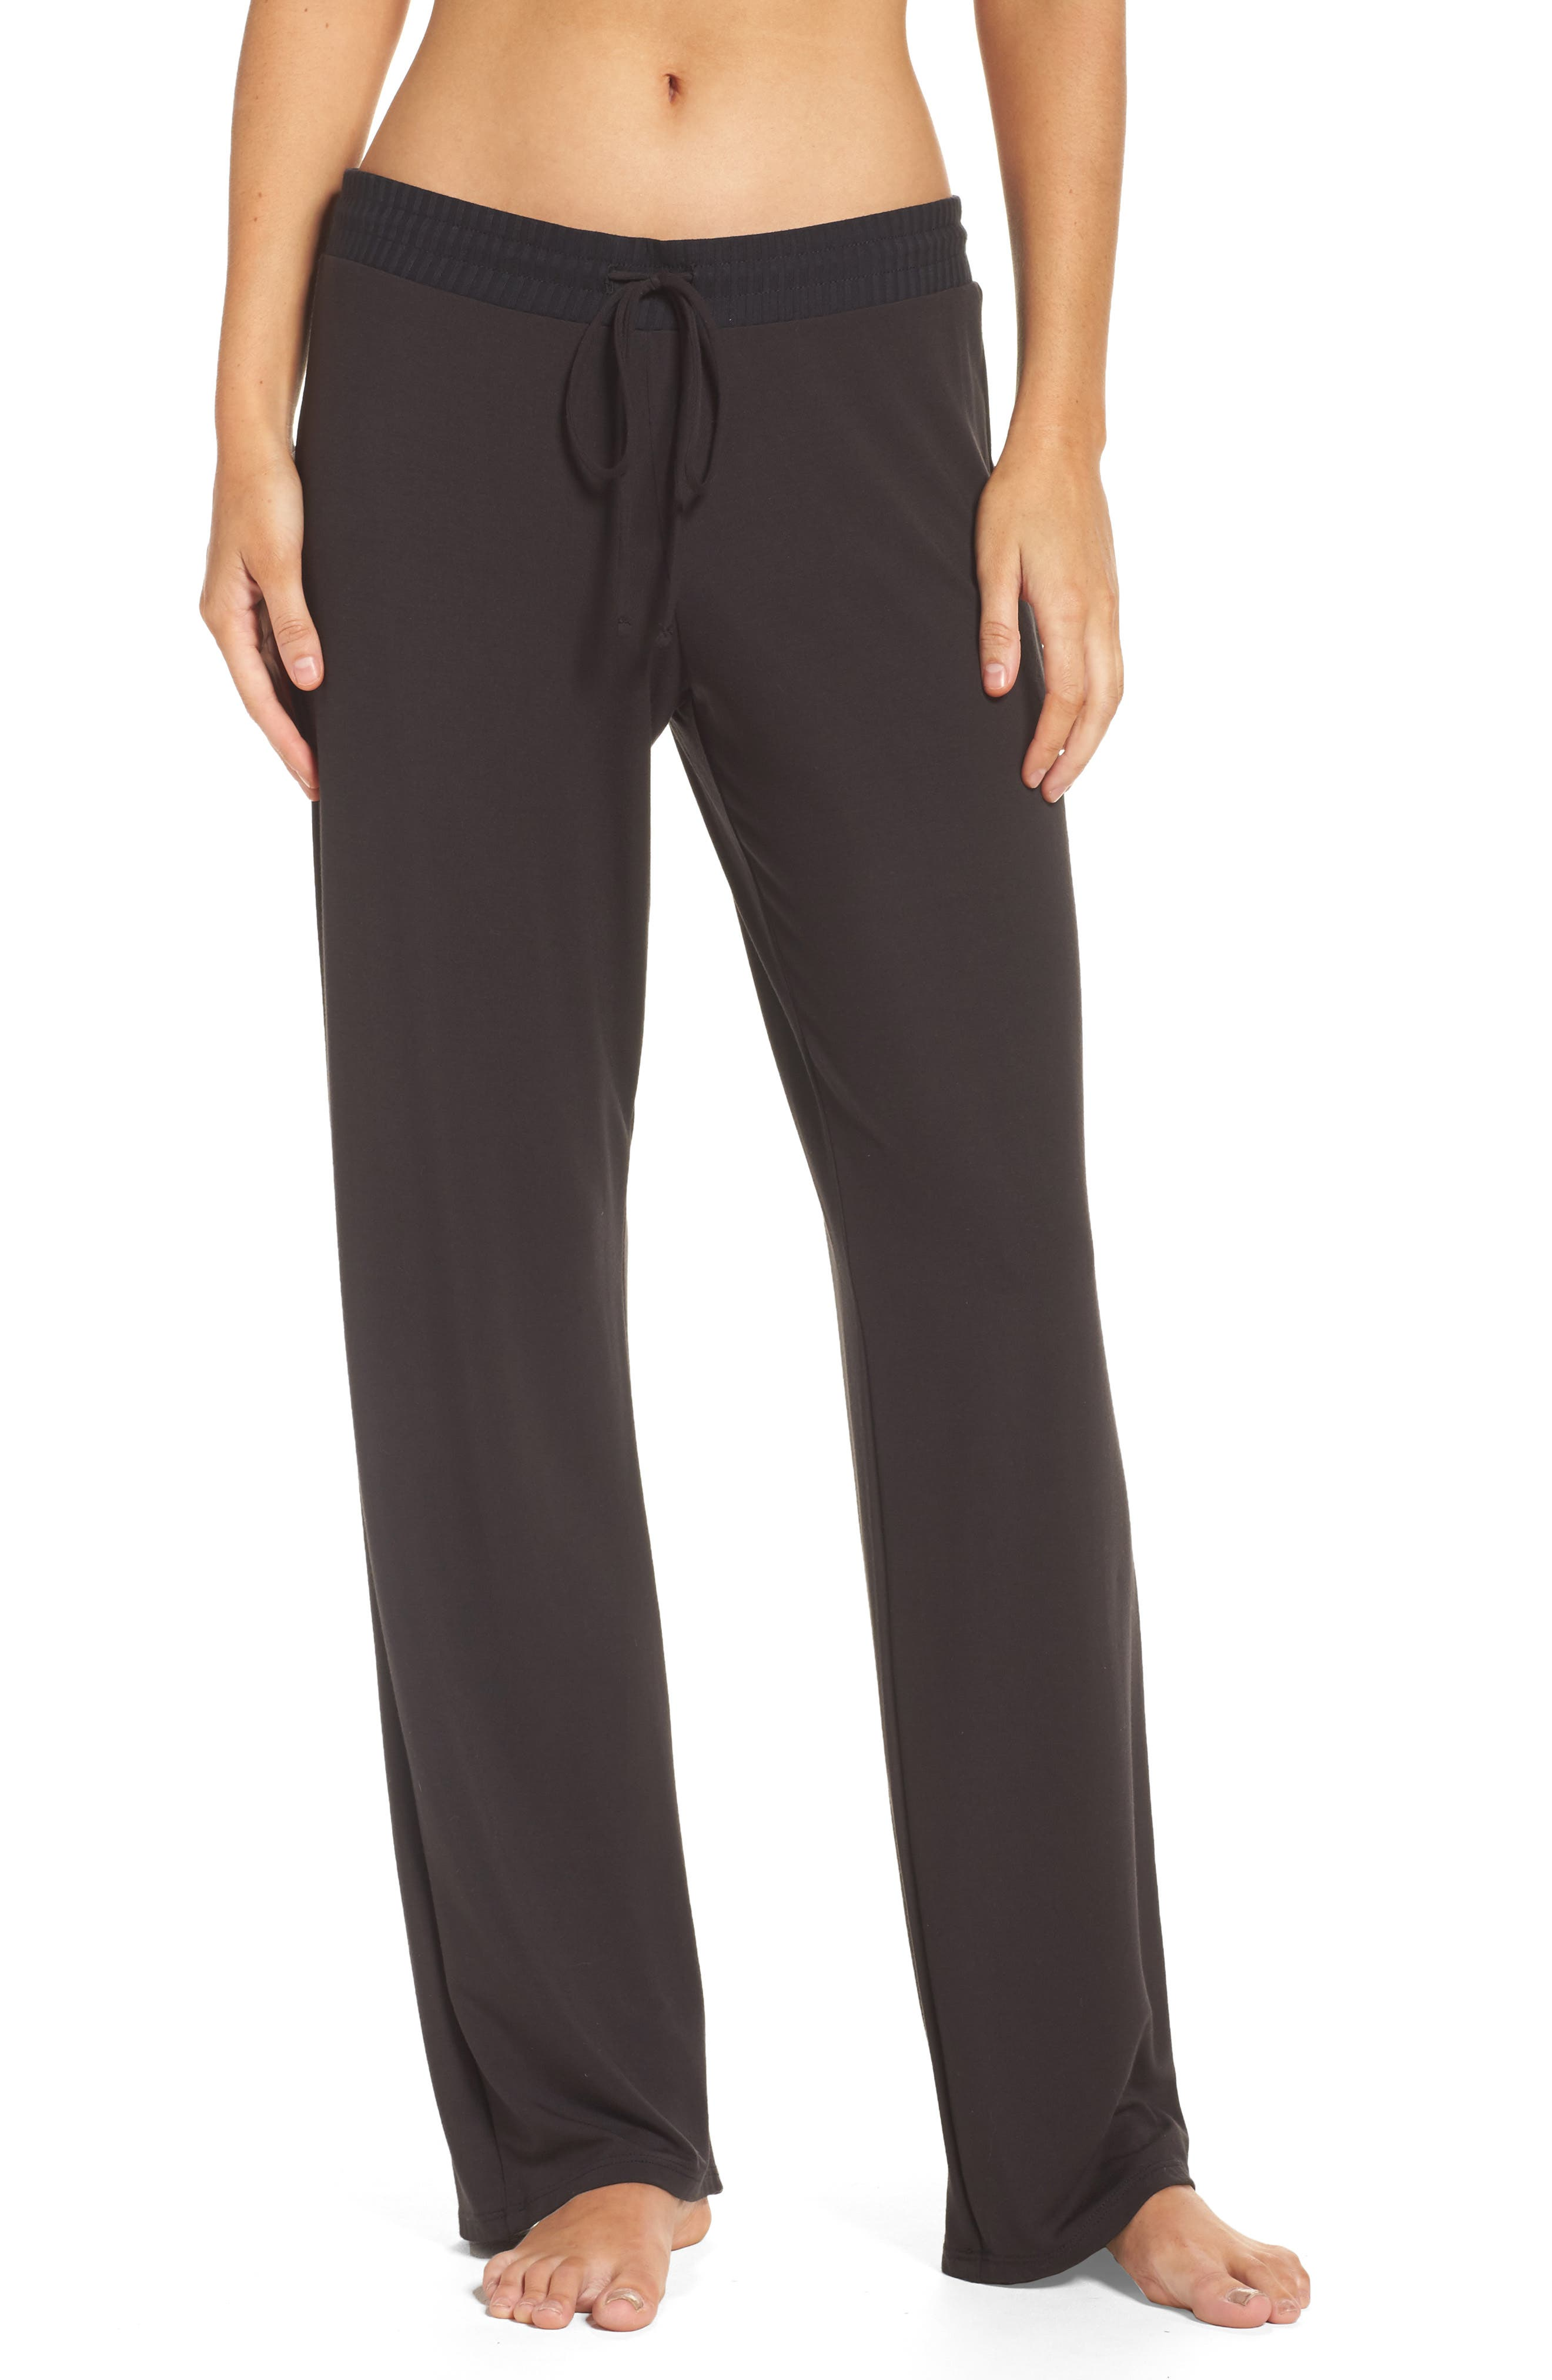 Chelsea Lounge Pants,                         Main,                         color, 001